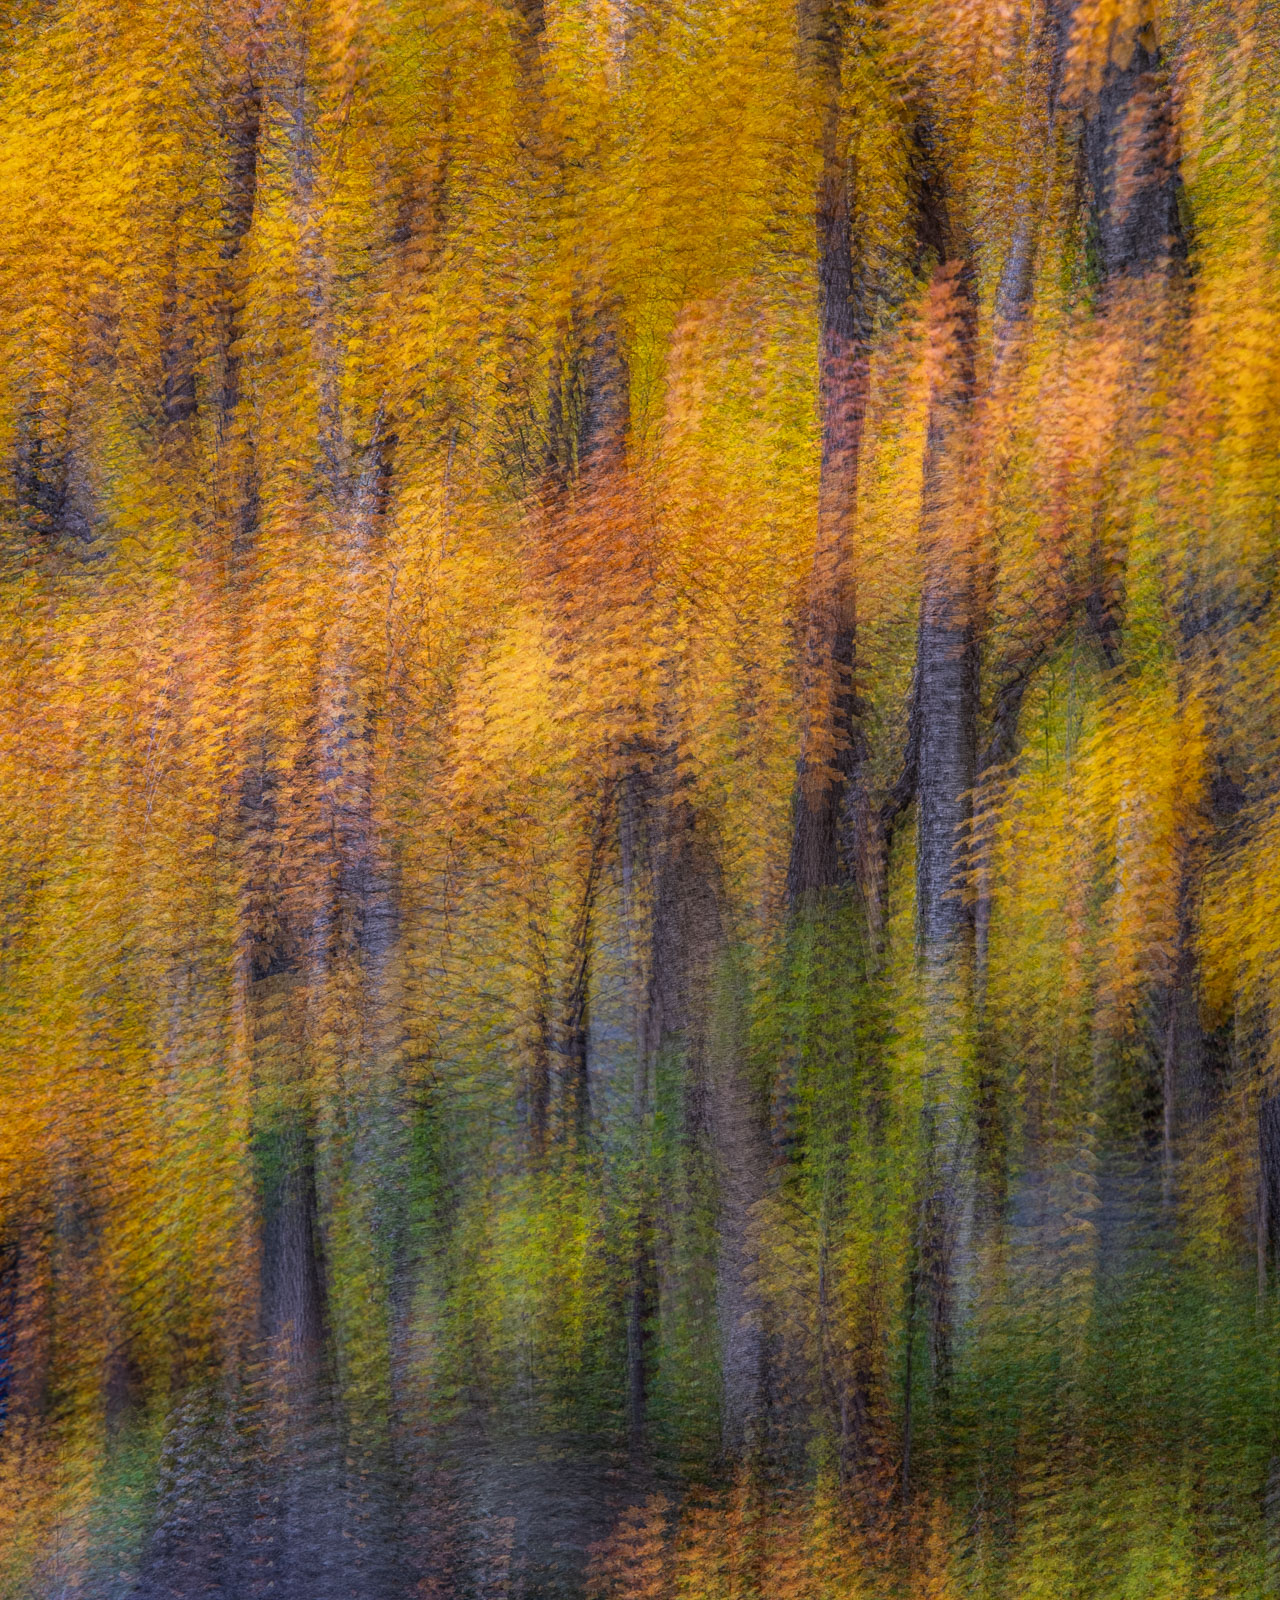 Abstraction of autumn woodslands in Vermont's famous Smugglers Notch.